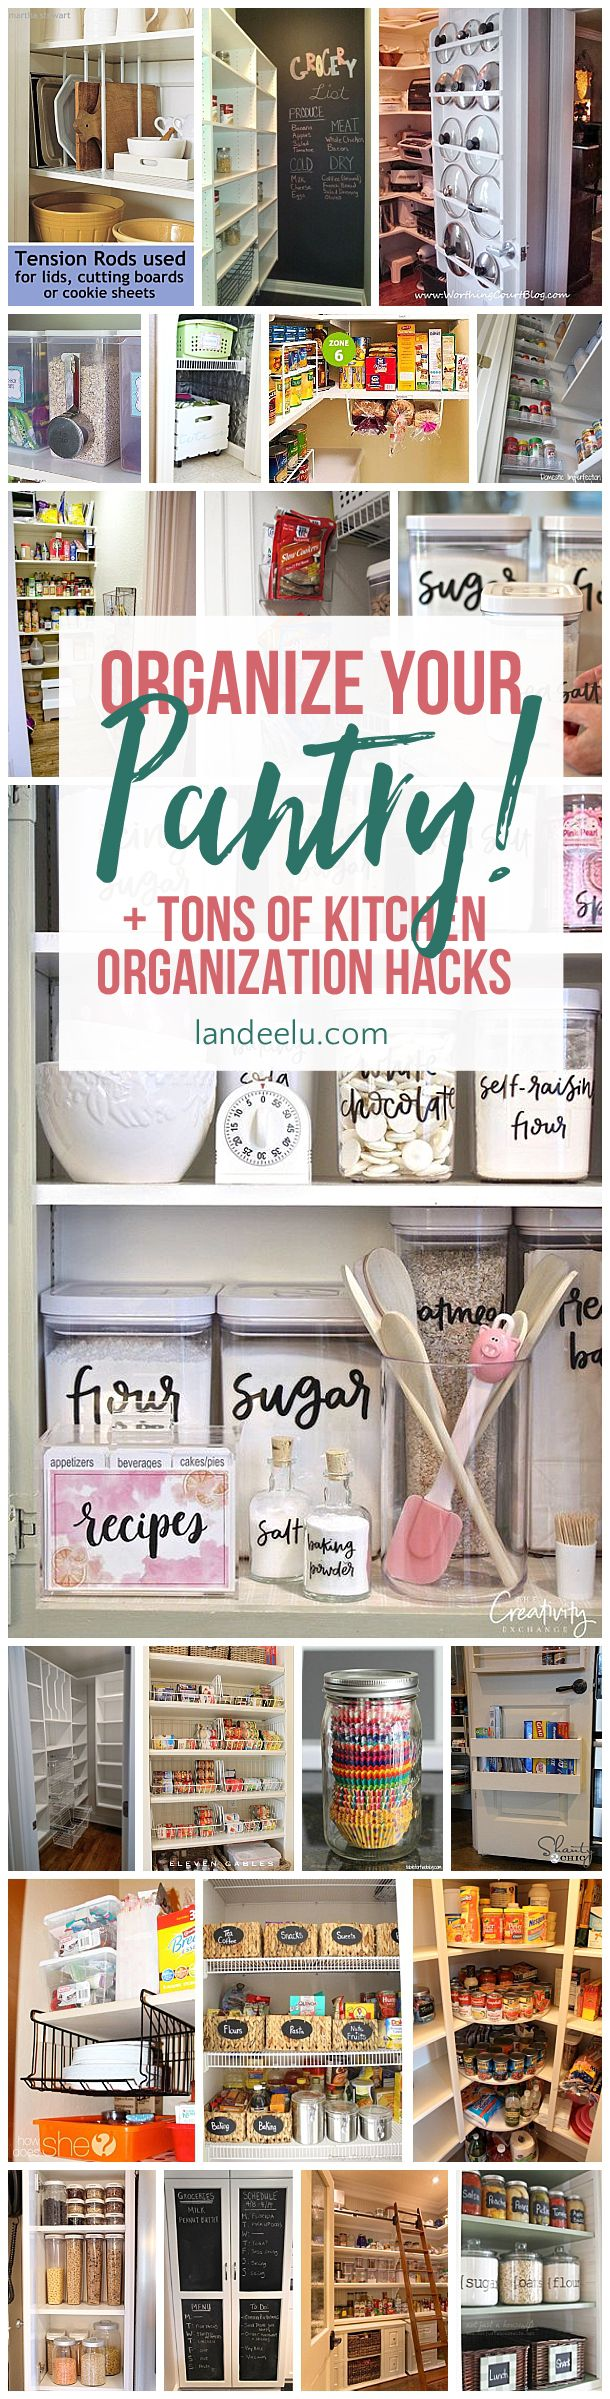 Get your kitchen organization on with these awesome ideas and hacks! Genius ideas to get your kitchen under control and back to being the heart of the home!